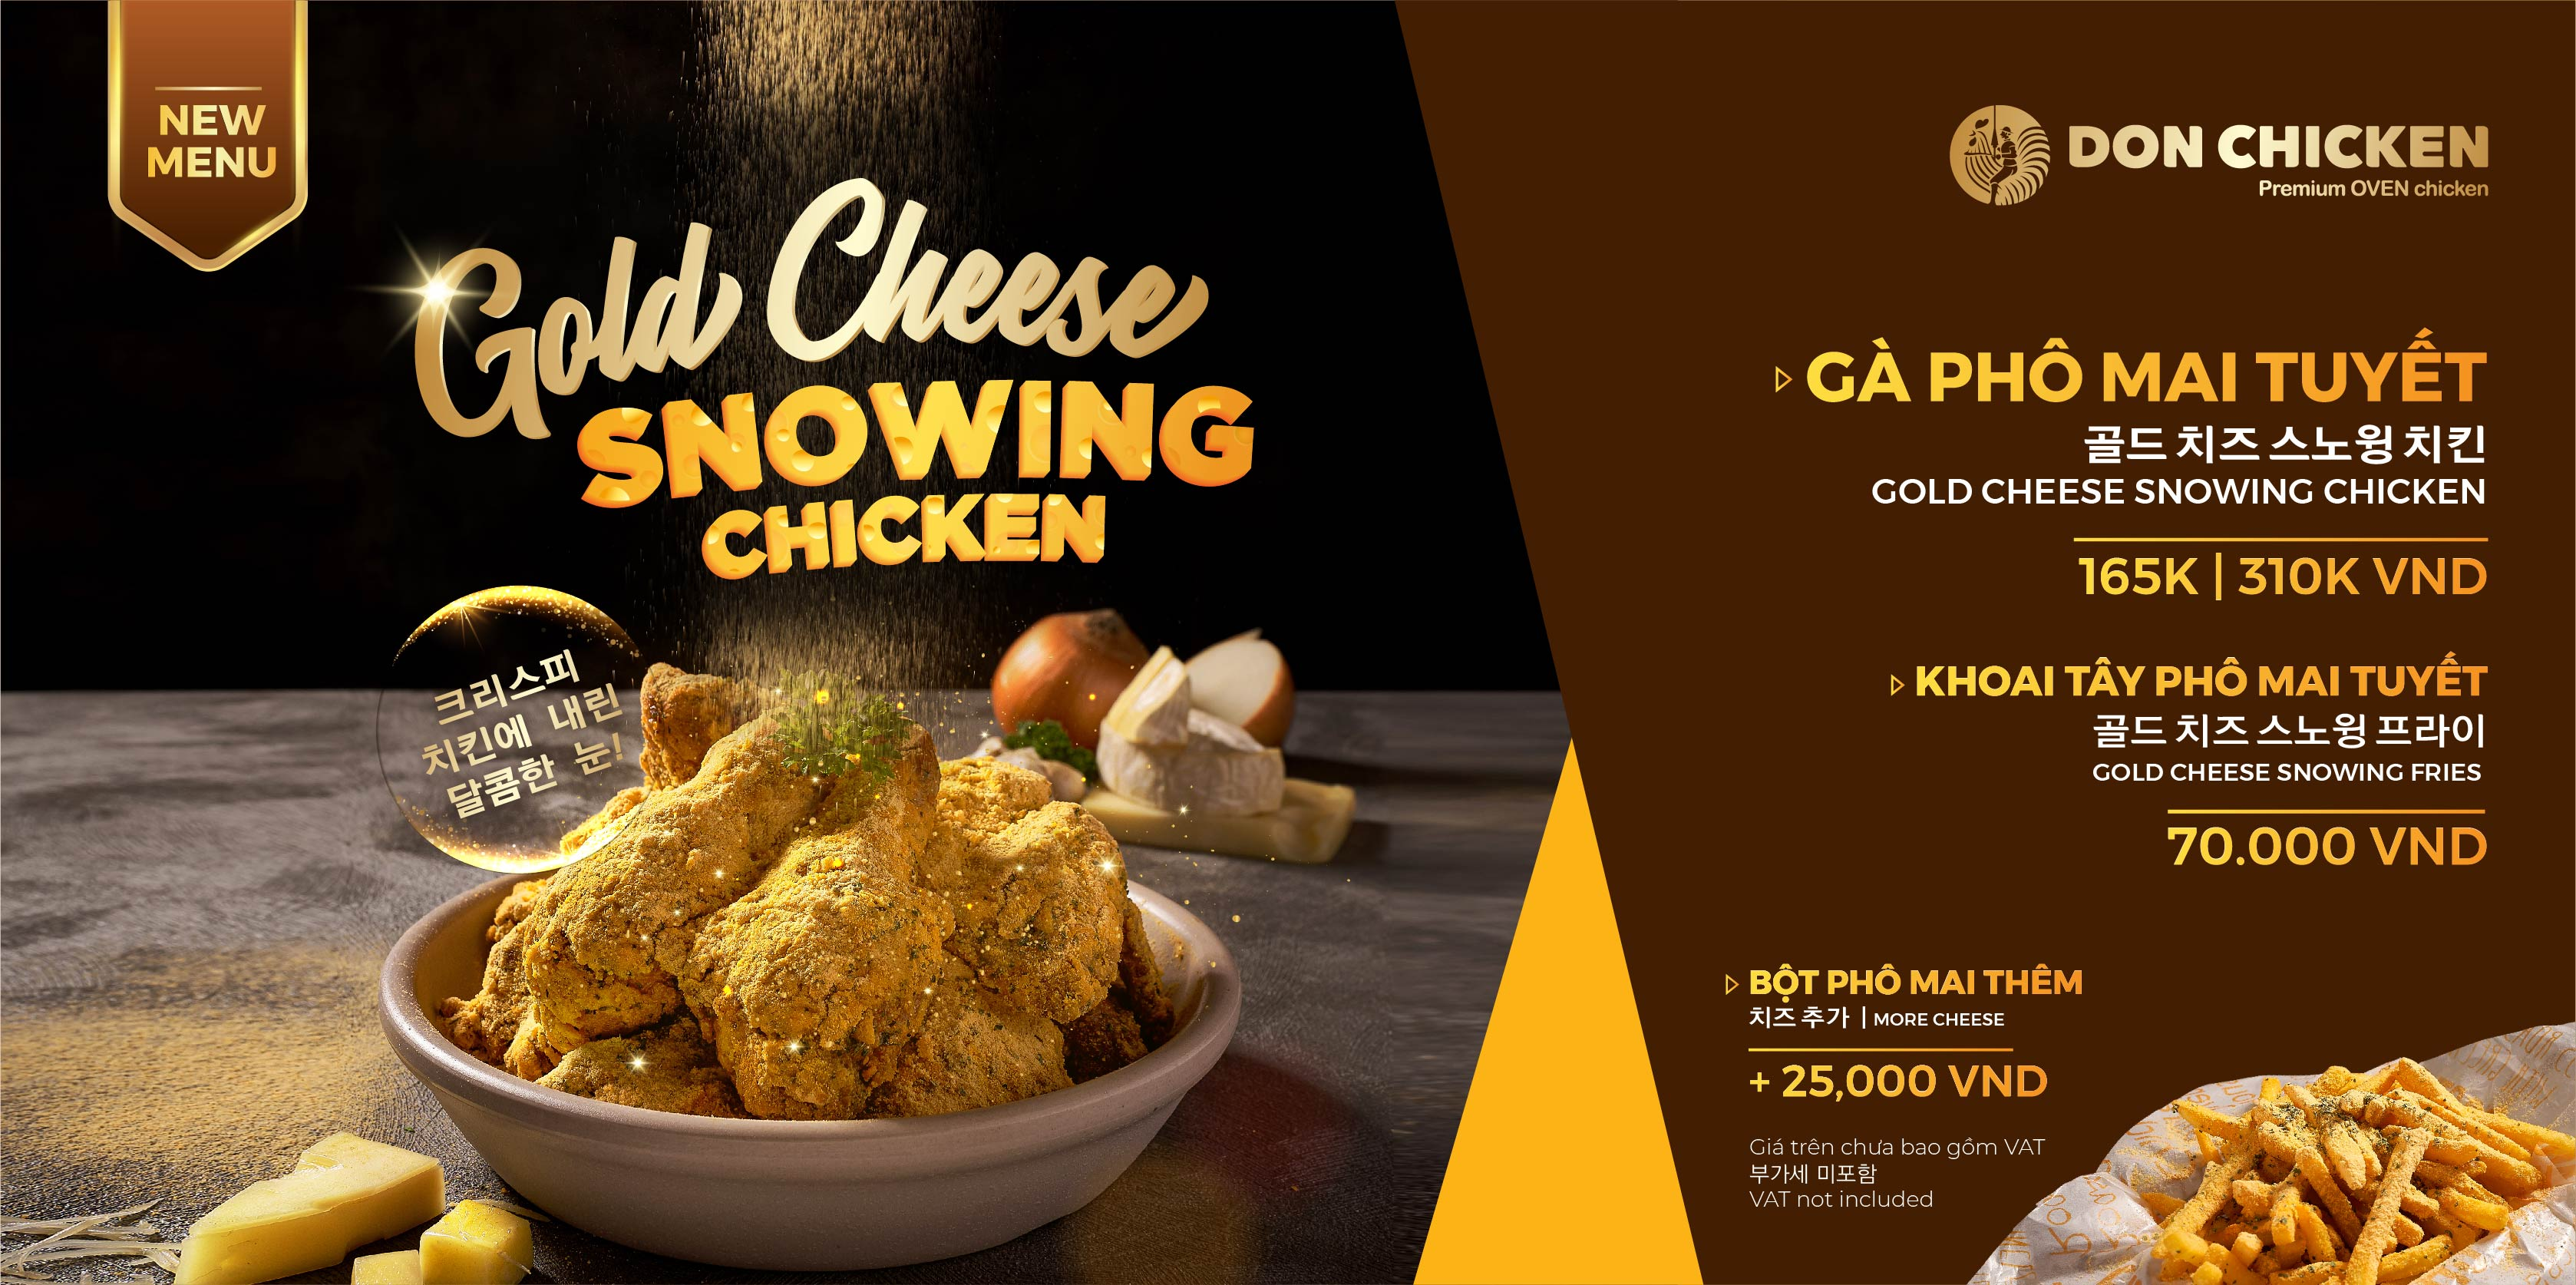 GOLD CHEESE SNOWING CHICKEN